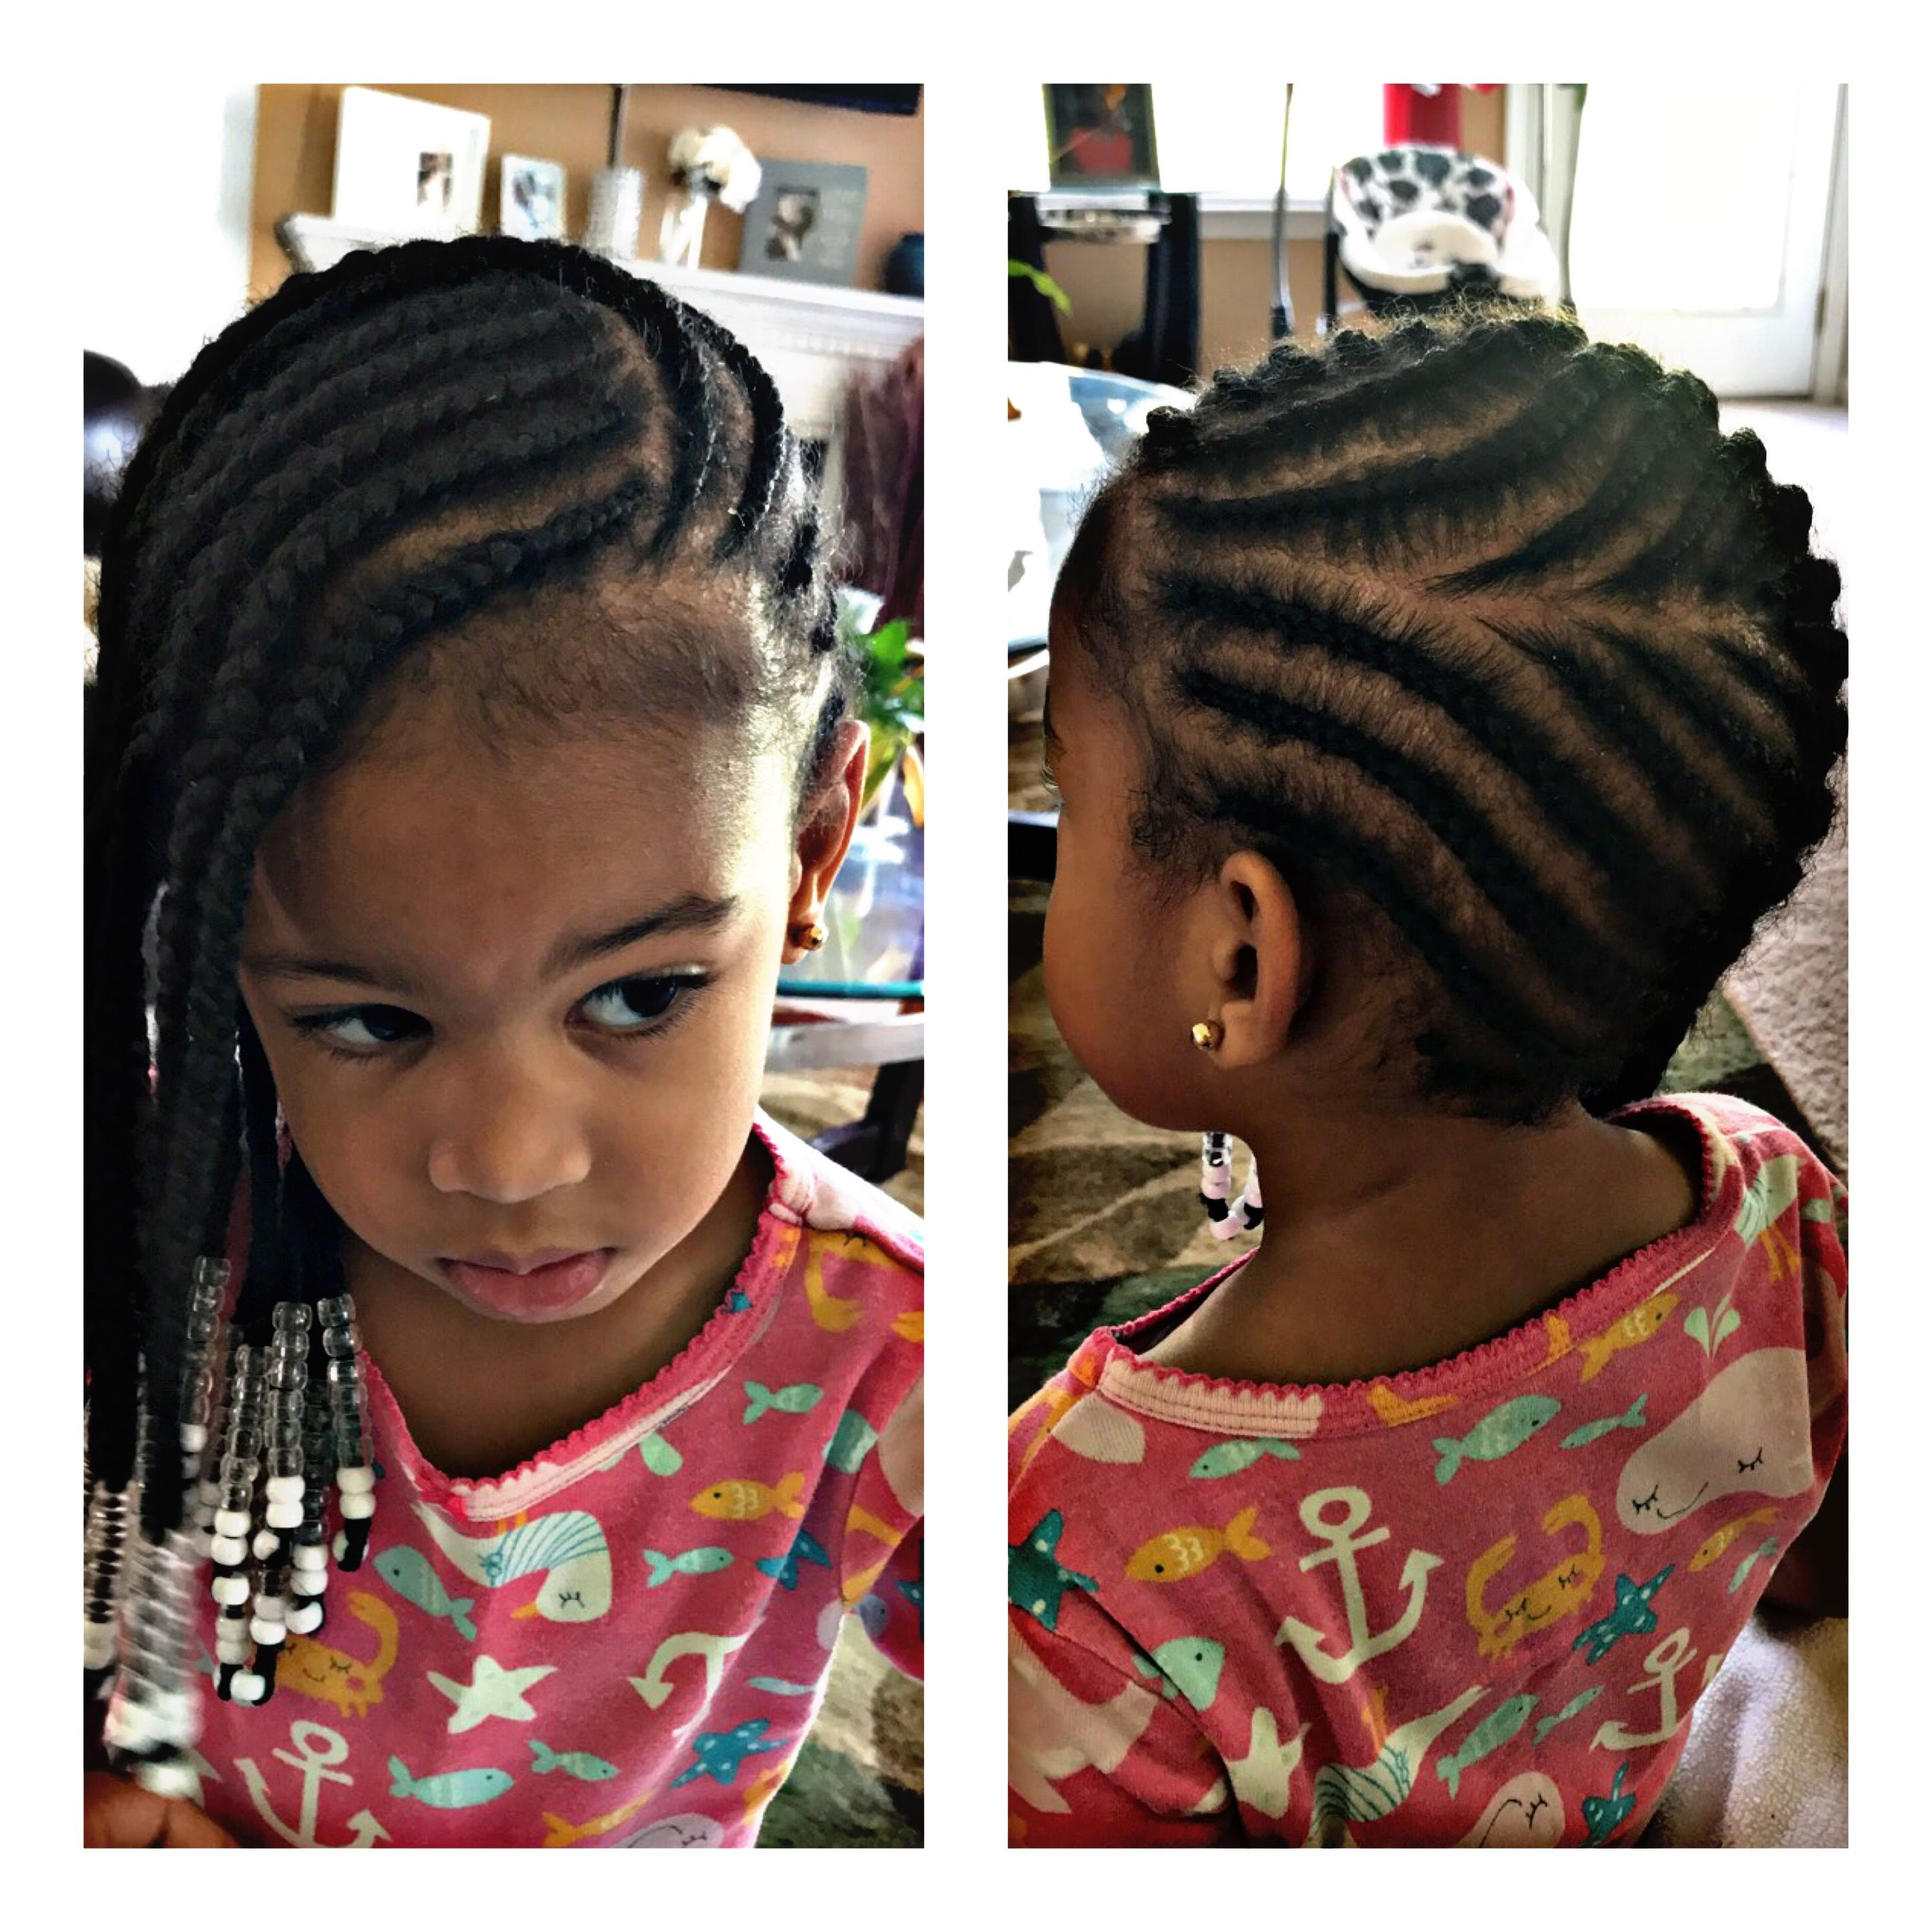 Kids Lemonade Braids Not A Picture Of Fresh Braids They Are Two Weeks Old Still Look Great Baby Girl Hairstyles Hair Styles Little Girl Braids